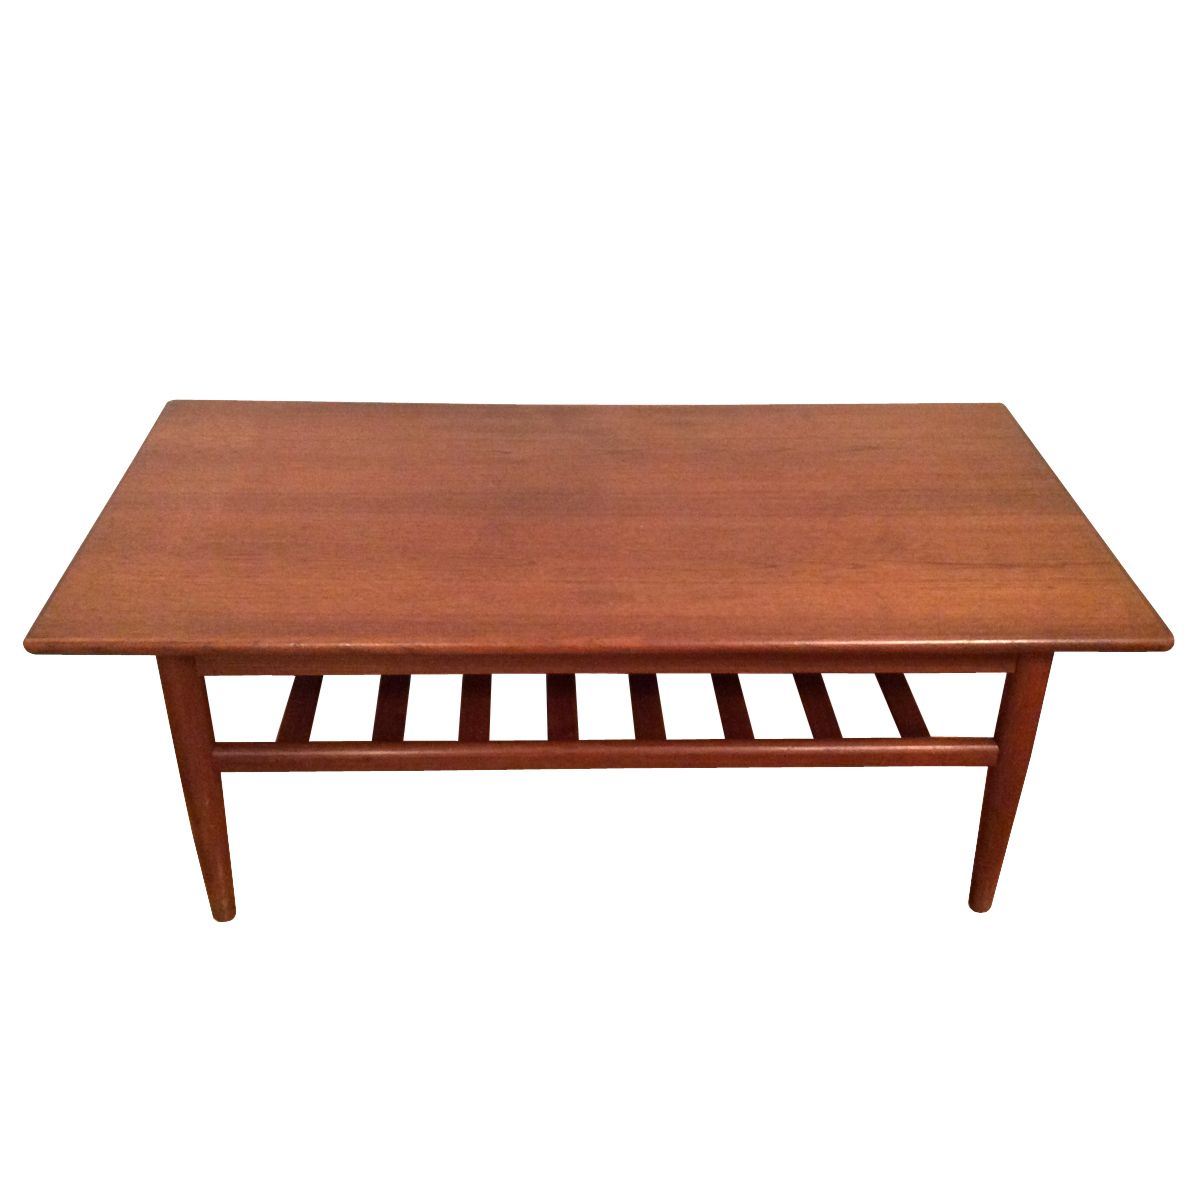 Teak Danish Coffee Table For Sale At Pamono